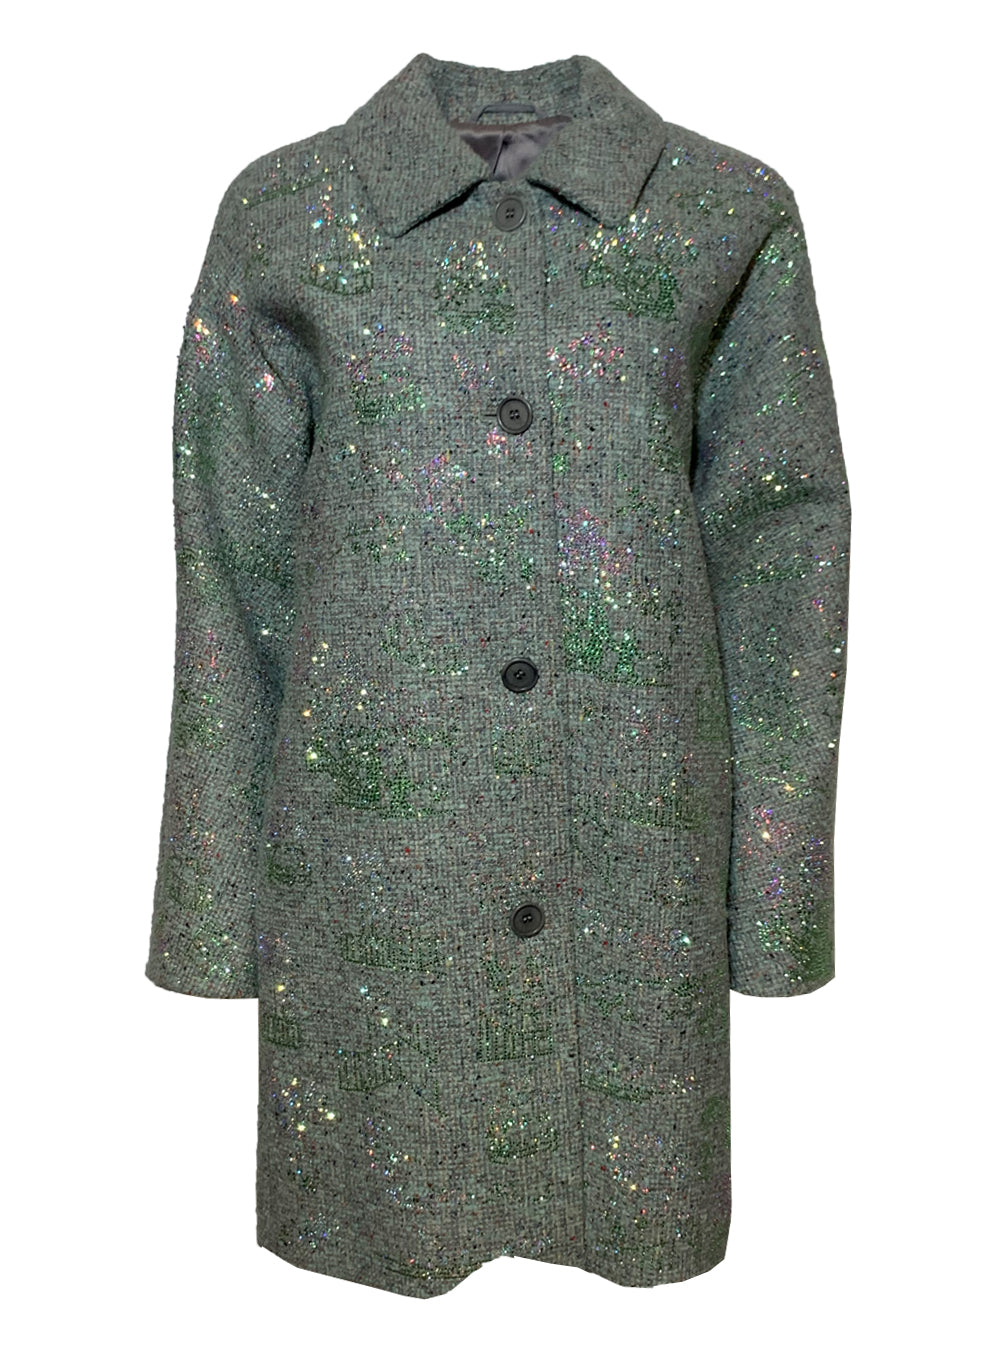 GREEN 'CHINOISERIE' VINTAGE COAT - One of a Kinds - Libertine